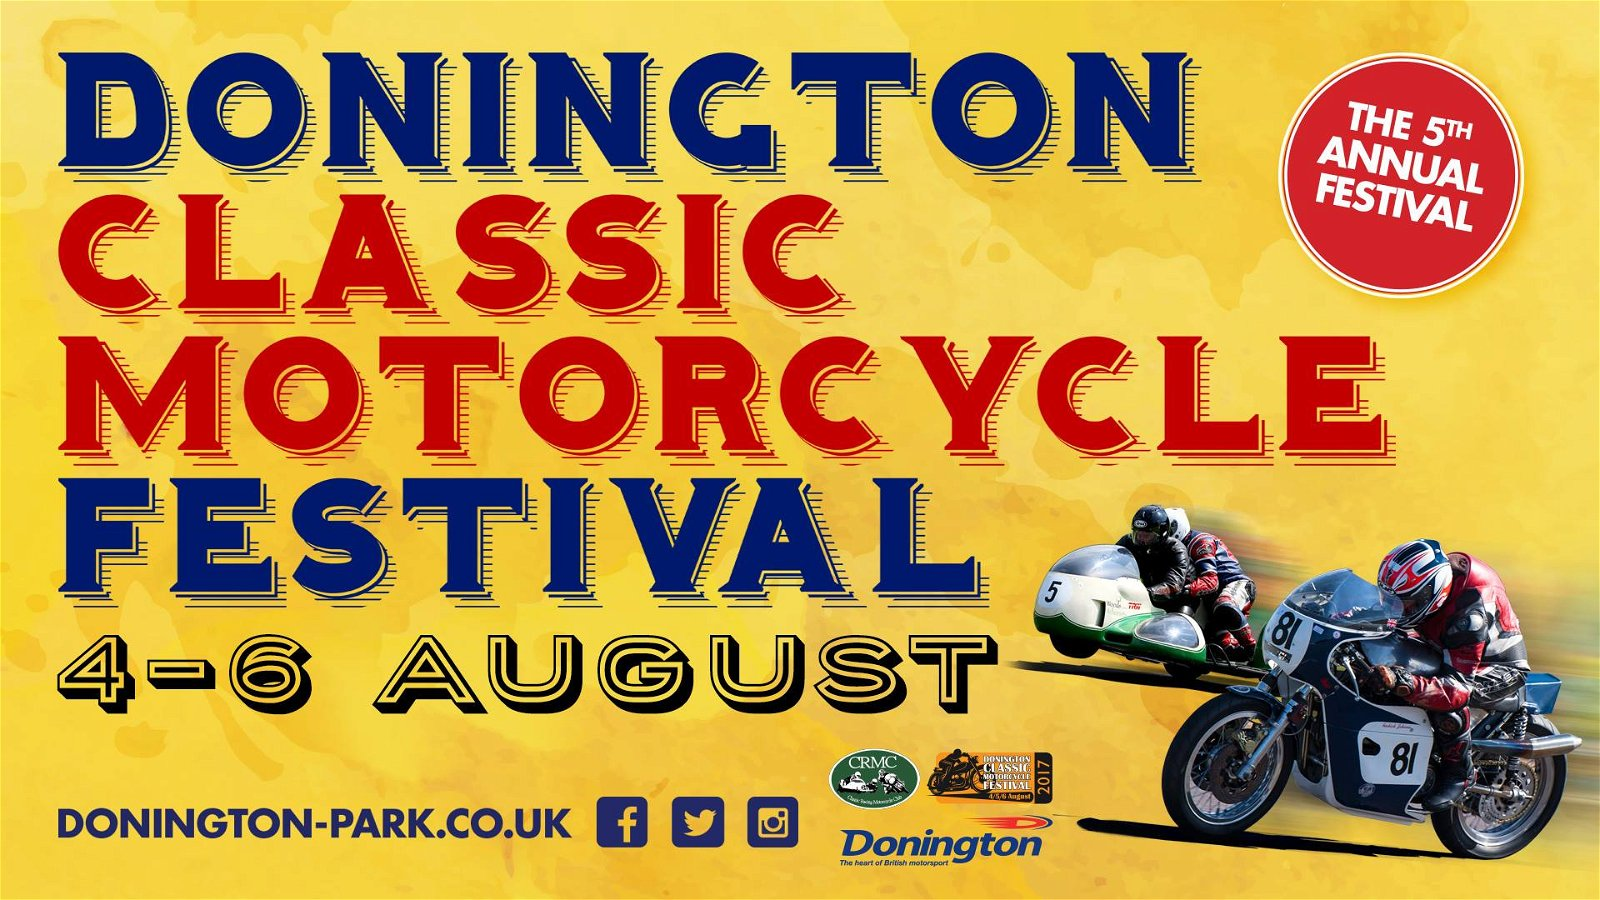 Donington Classic Motorcycle Festival, August 2017